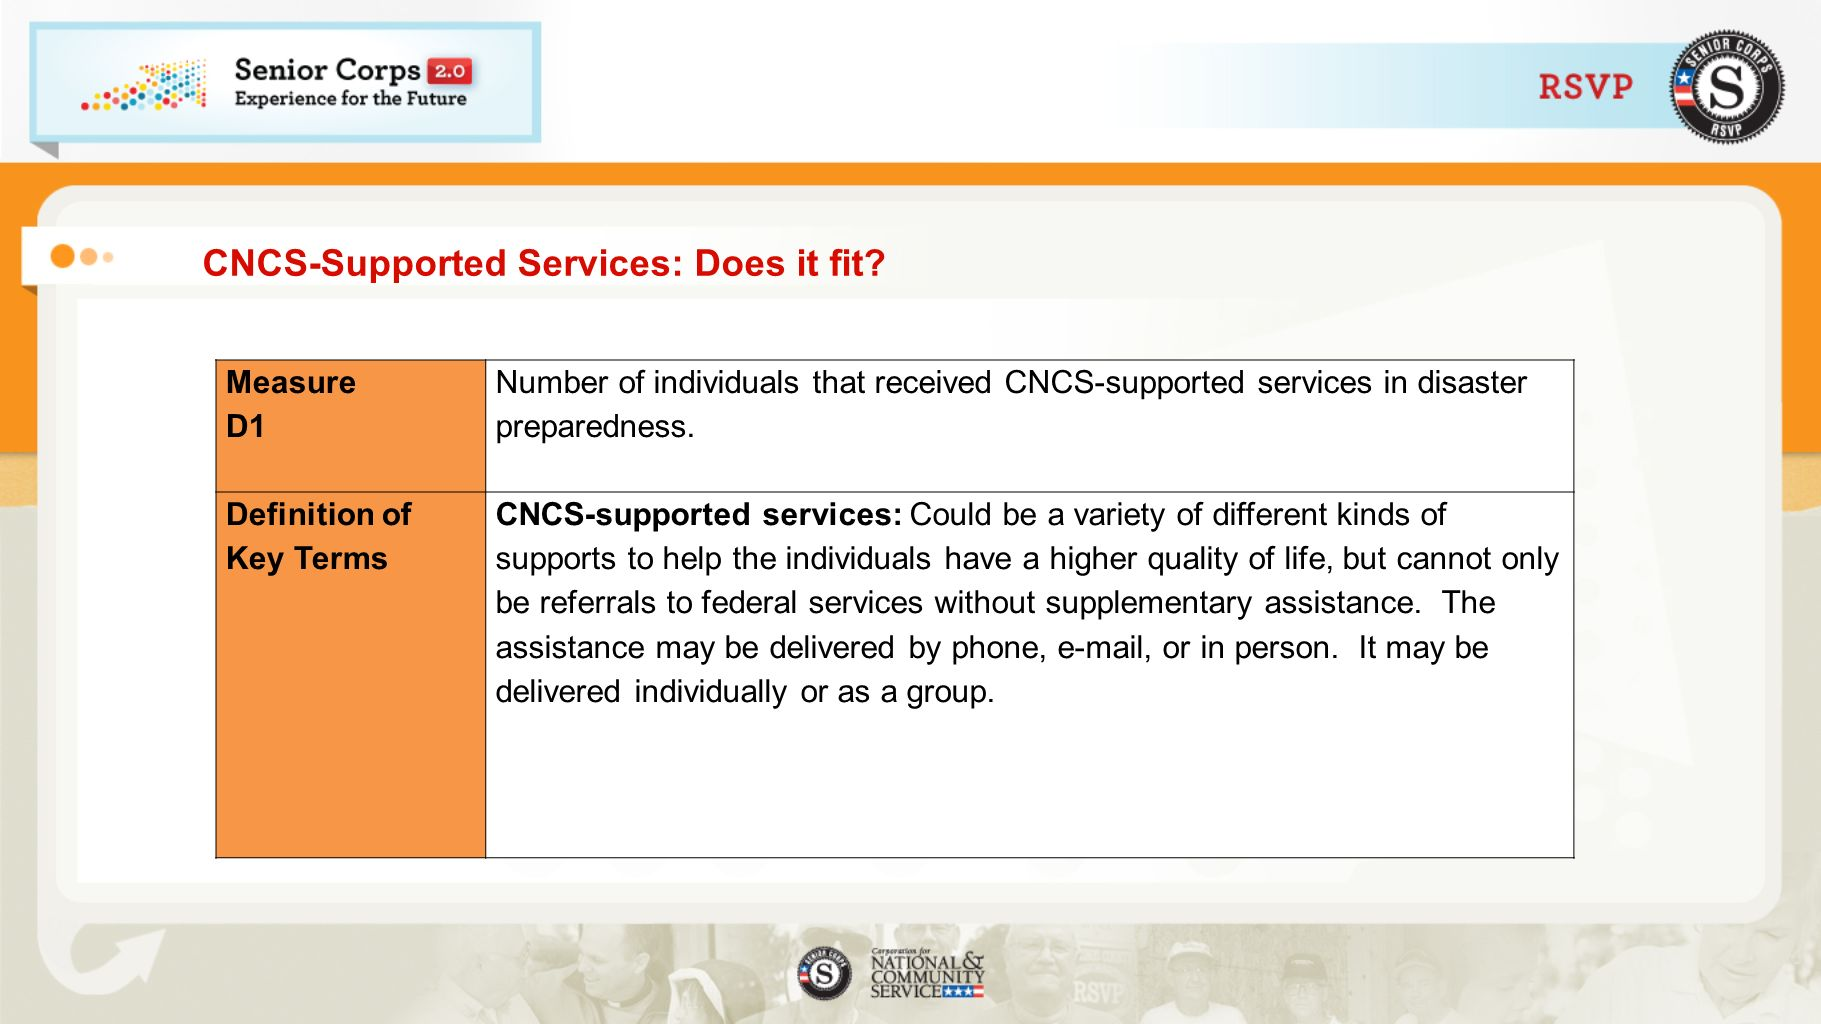 CNCS-Supported Services: Does it fit.